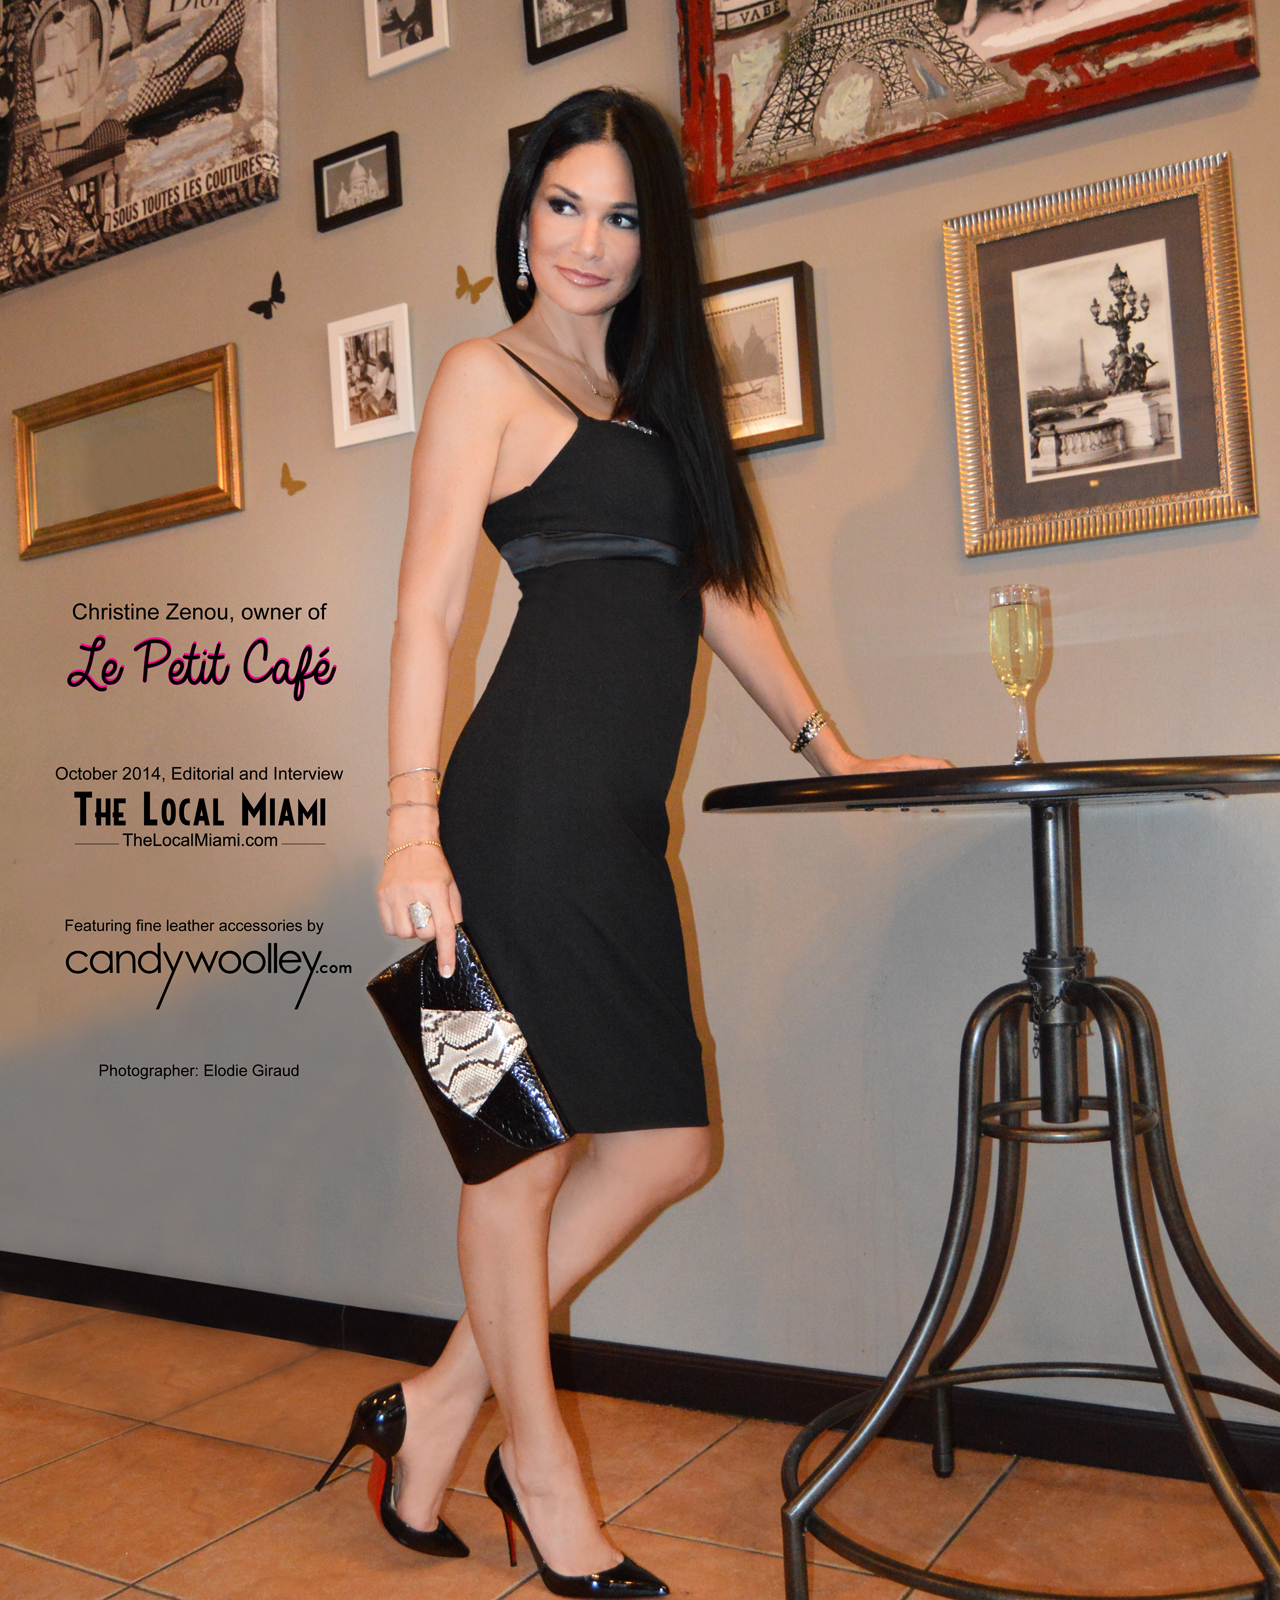 Le Petit Cafe Miami Owner Christine Zenou with a Candy Woolley Sahara clutch